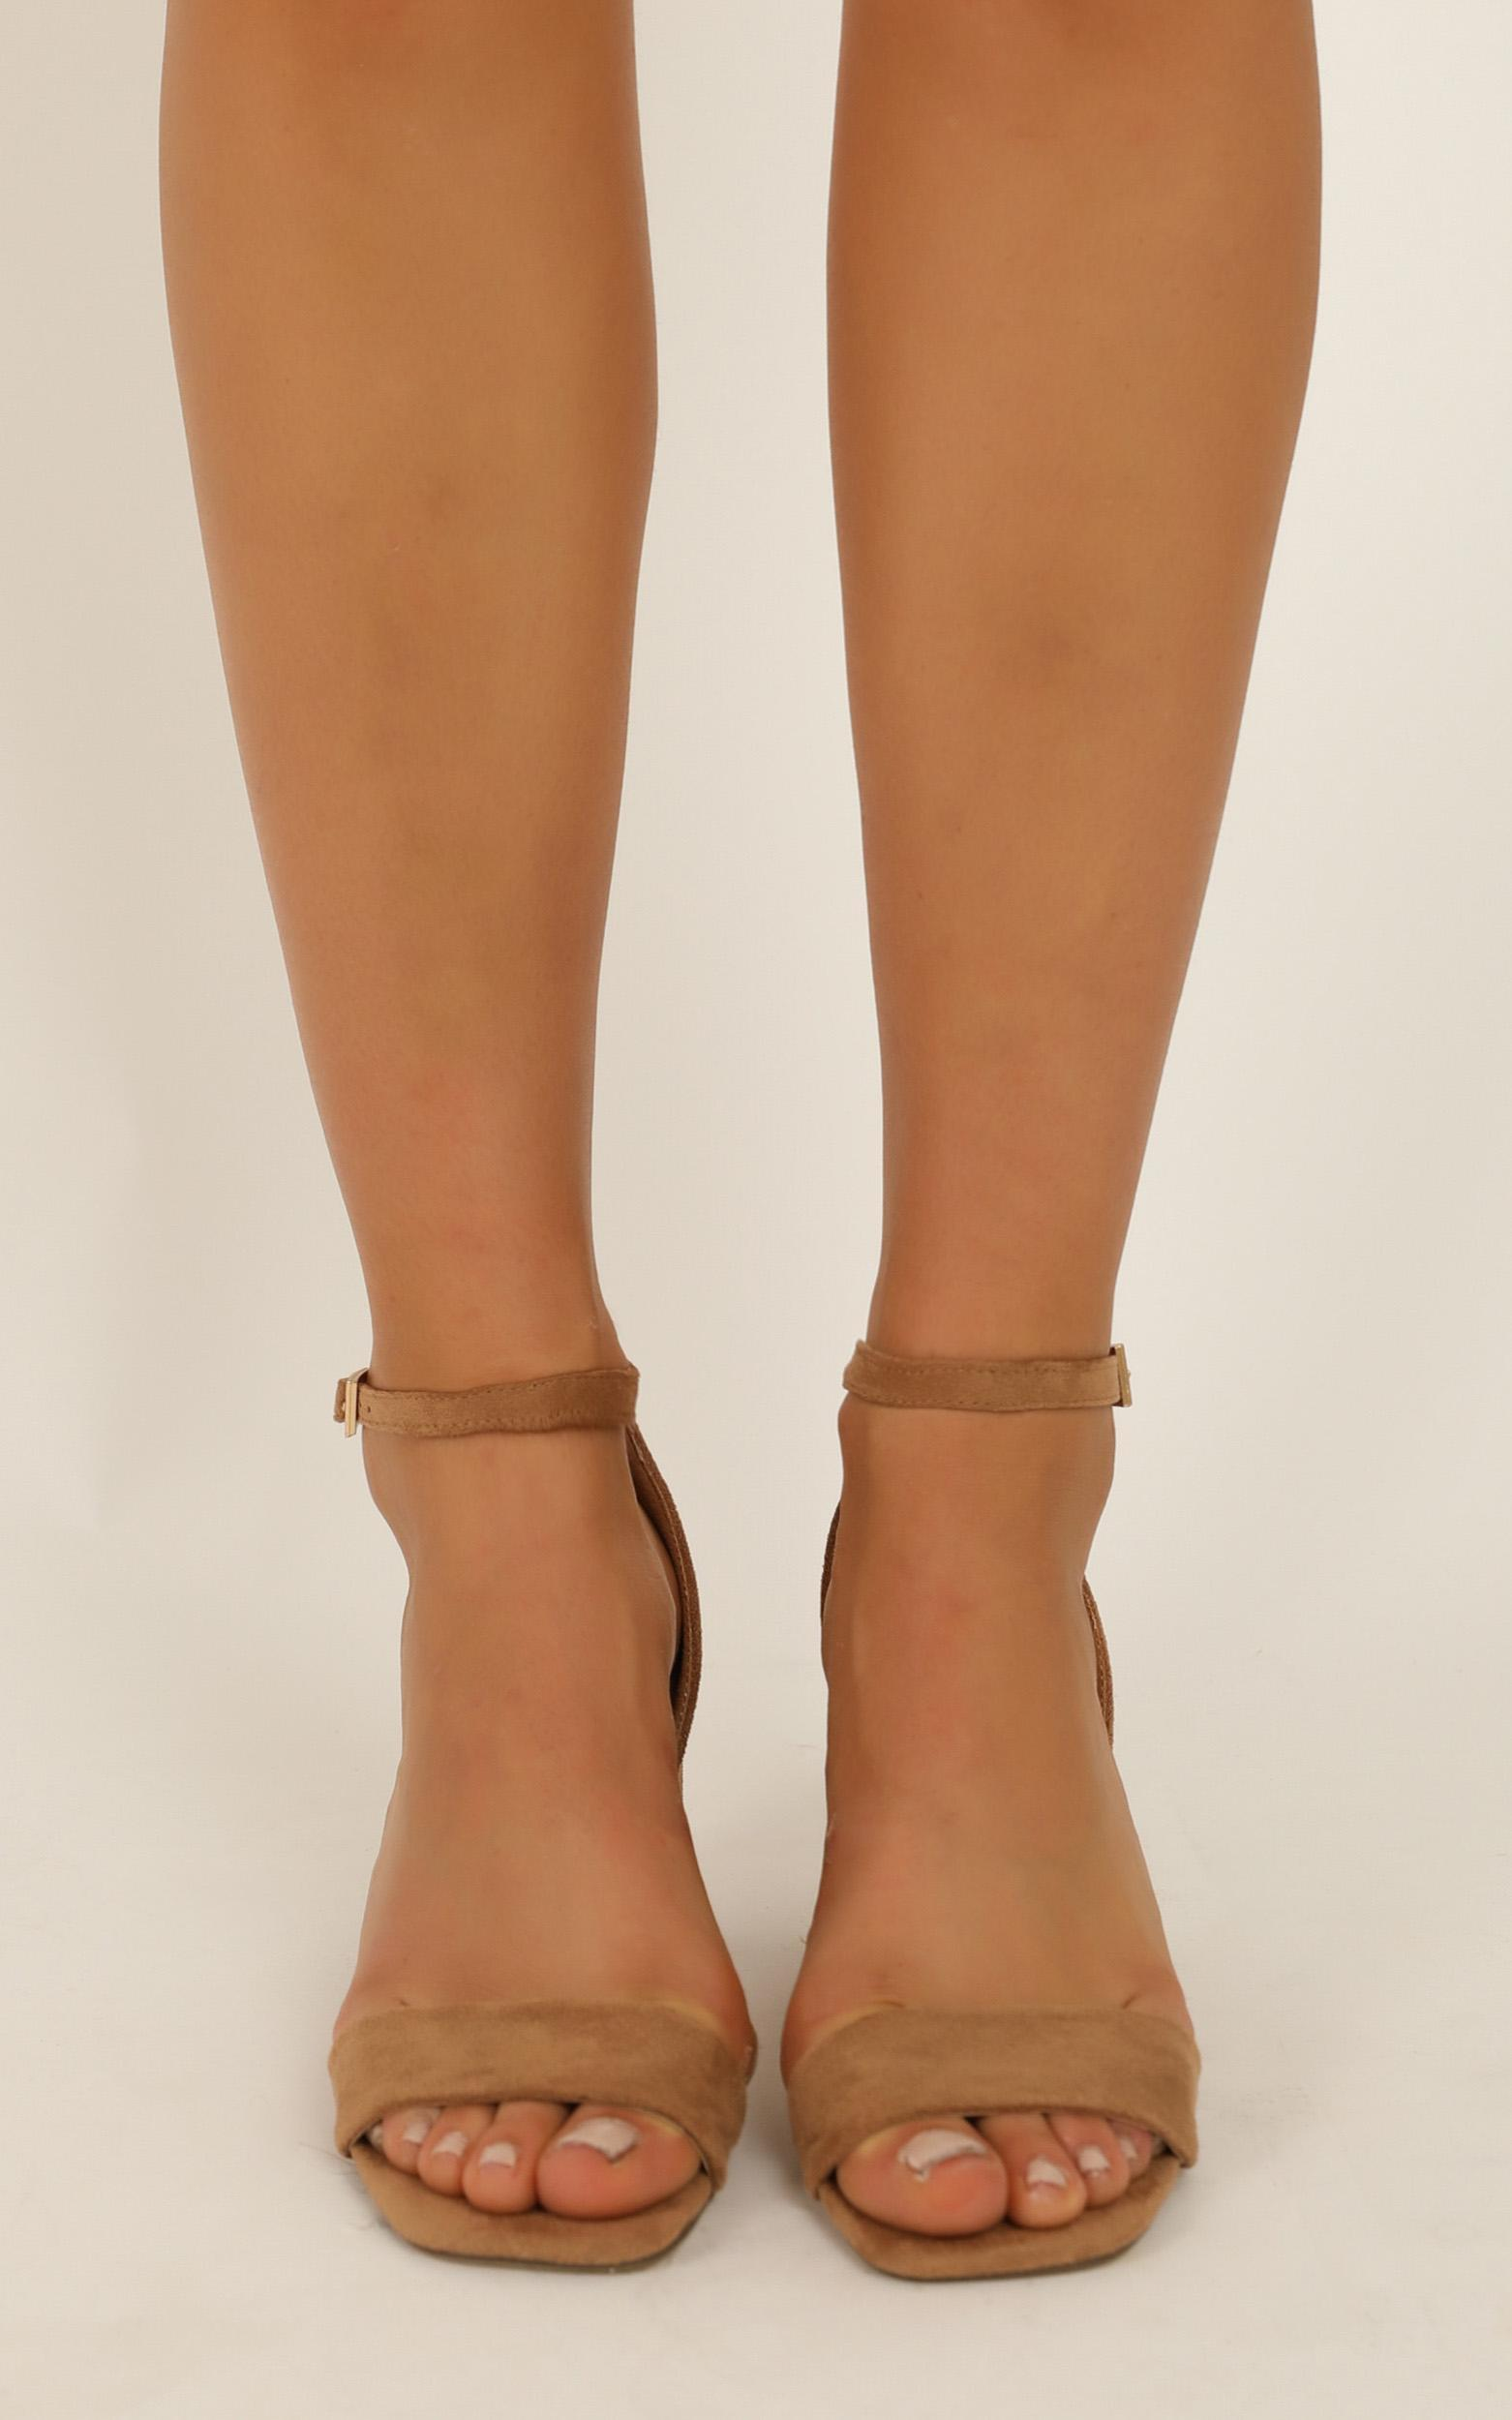 Therapy - Mae Heels in camel micro - 10, Camel, hi-res image number null